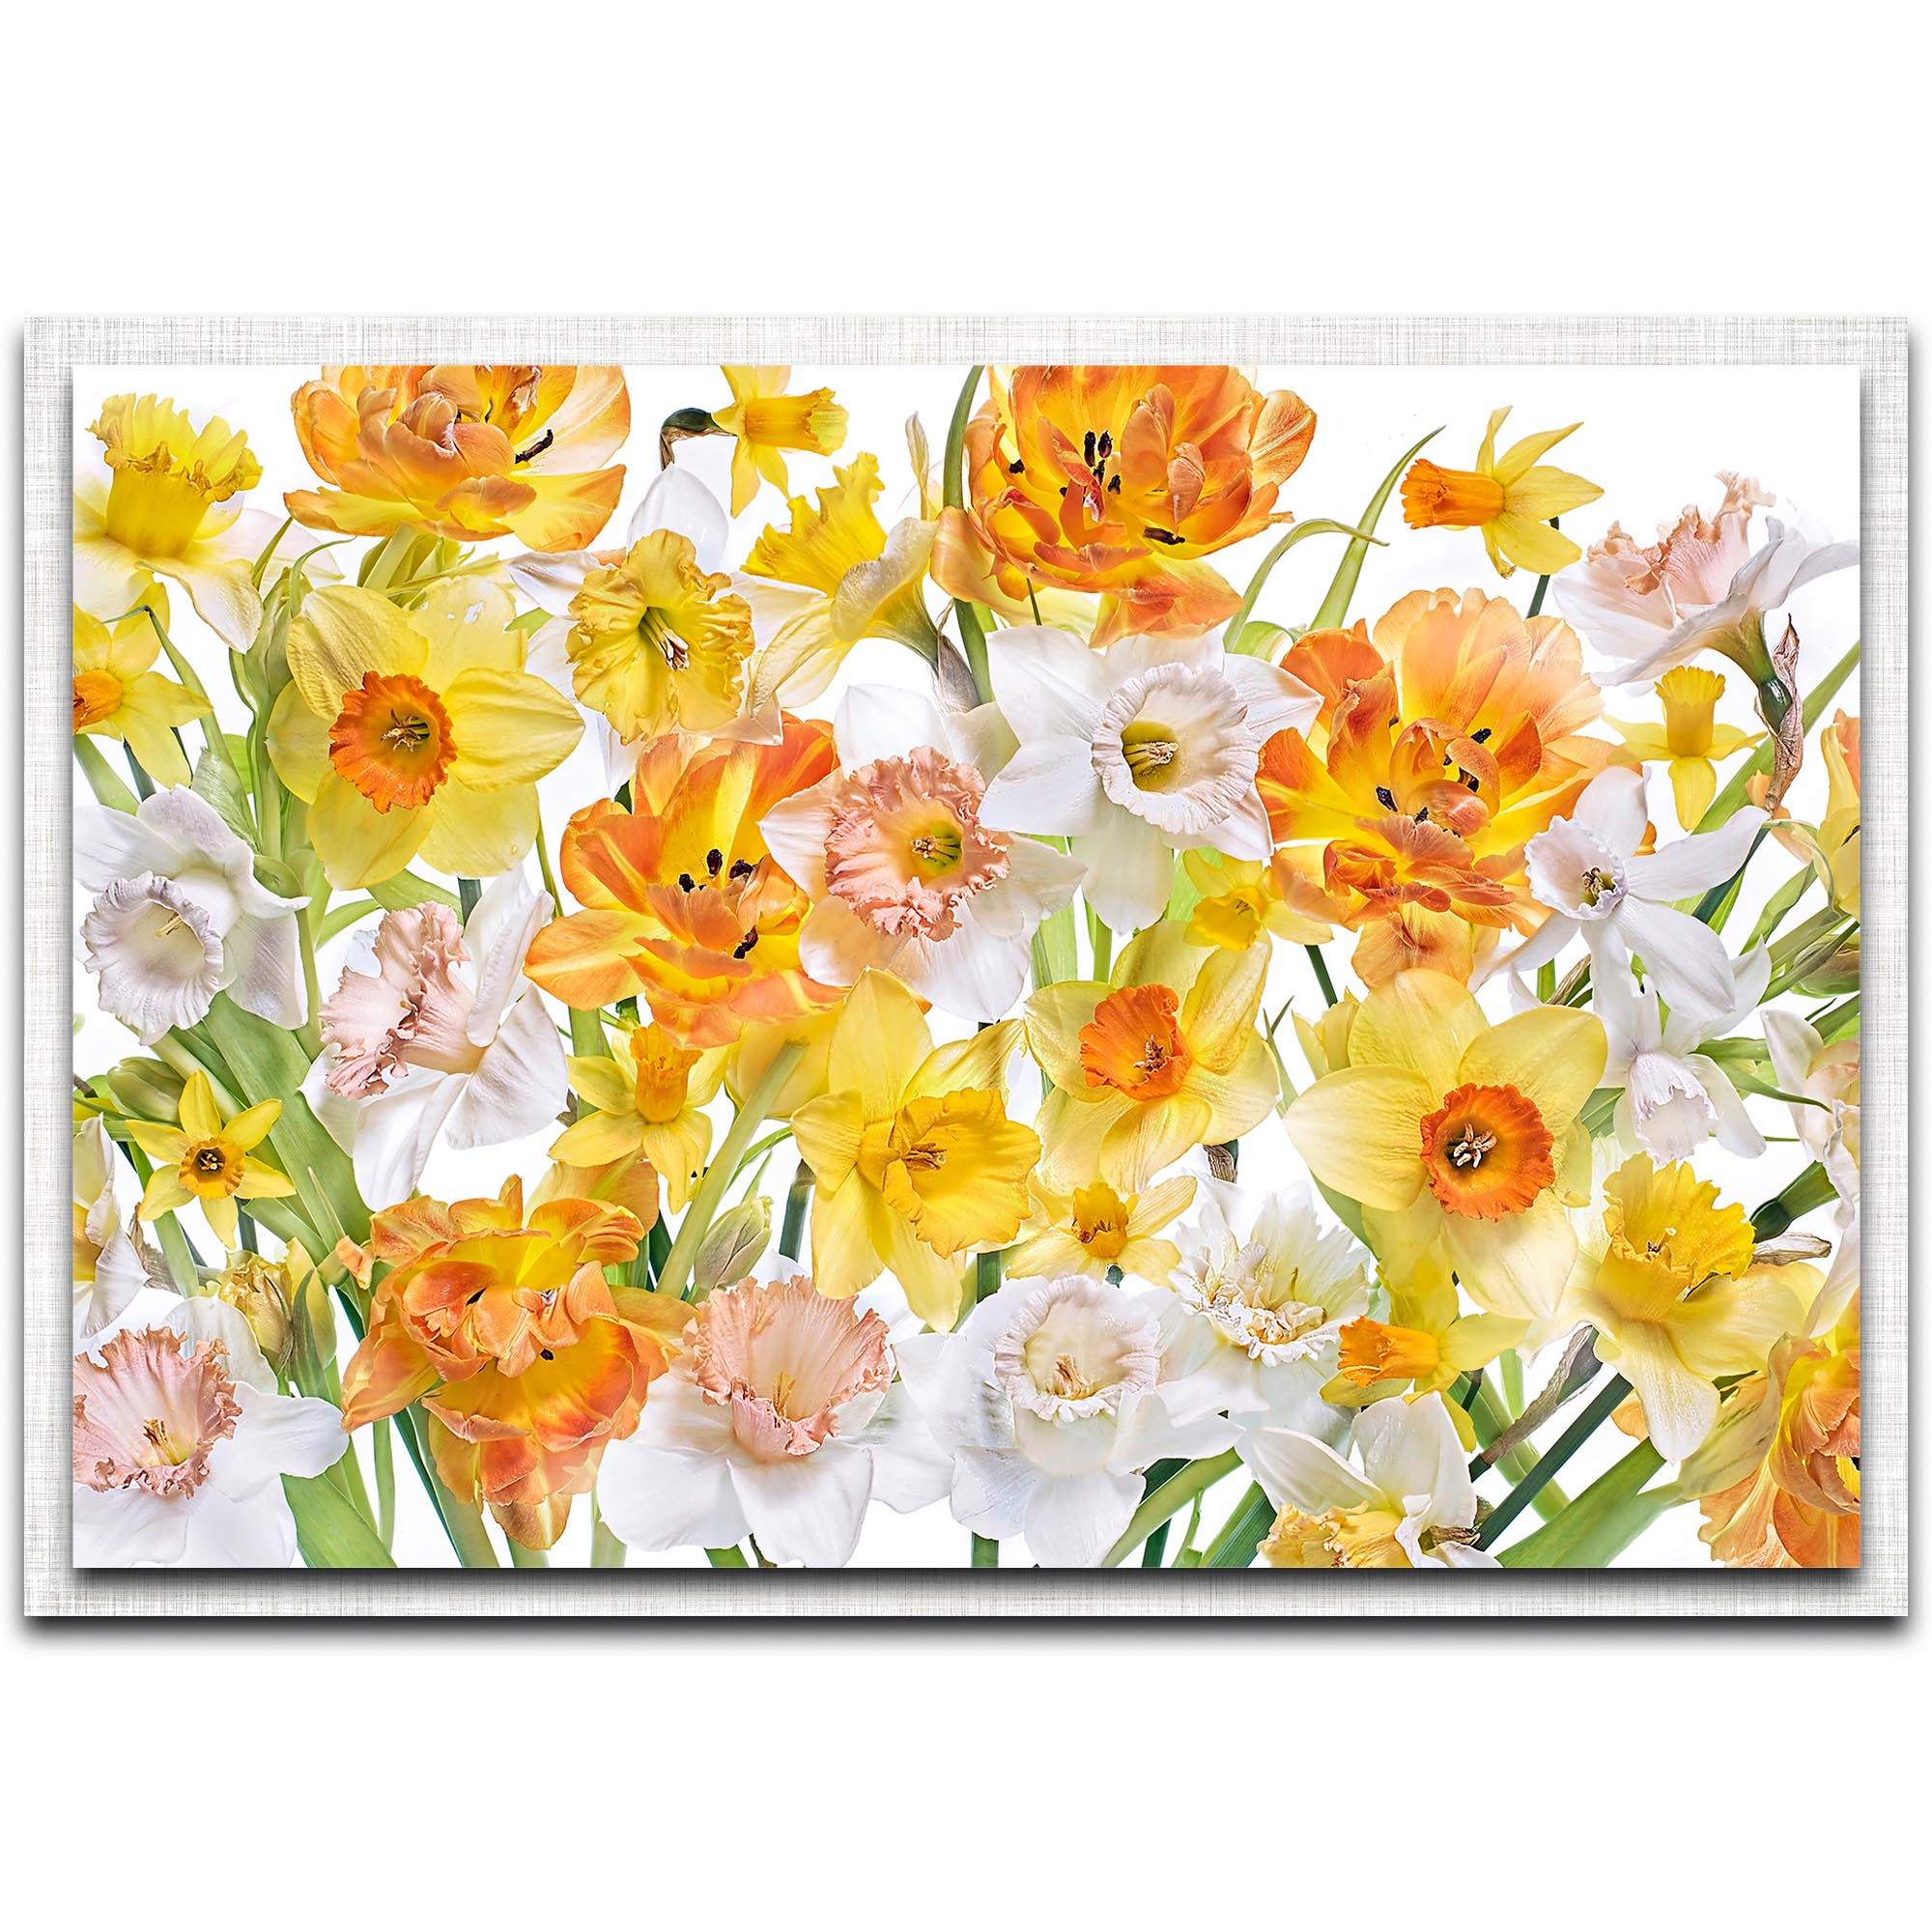 Jacky Parker 'Spirited' 32in x 22in Modern Farmhouse Floral on Metal